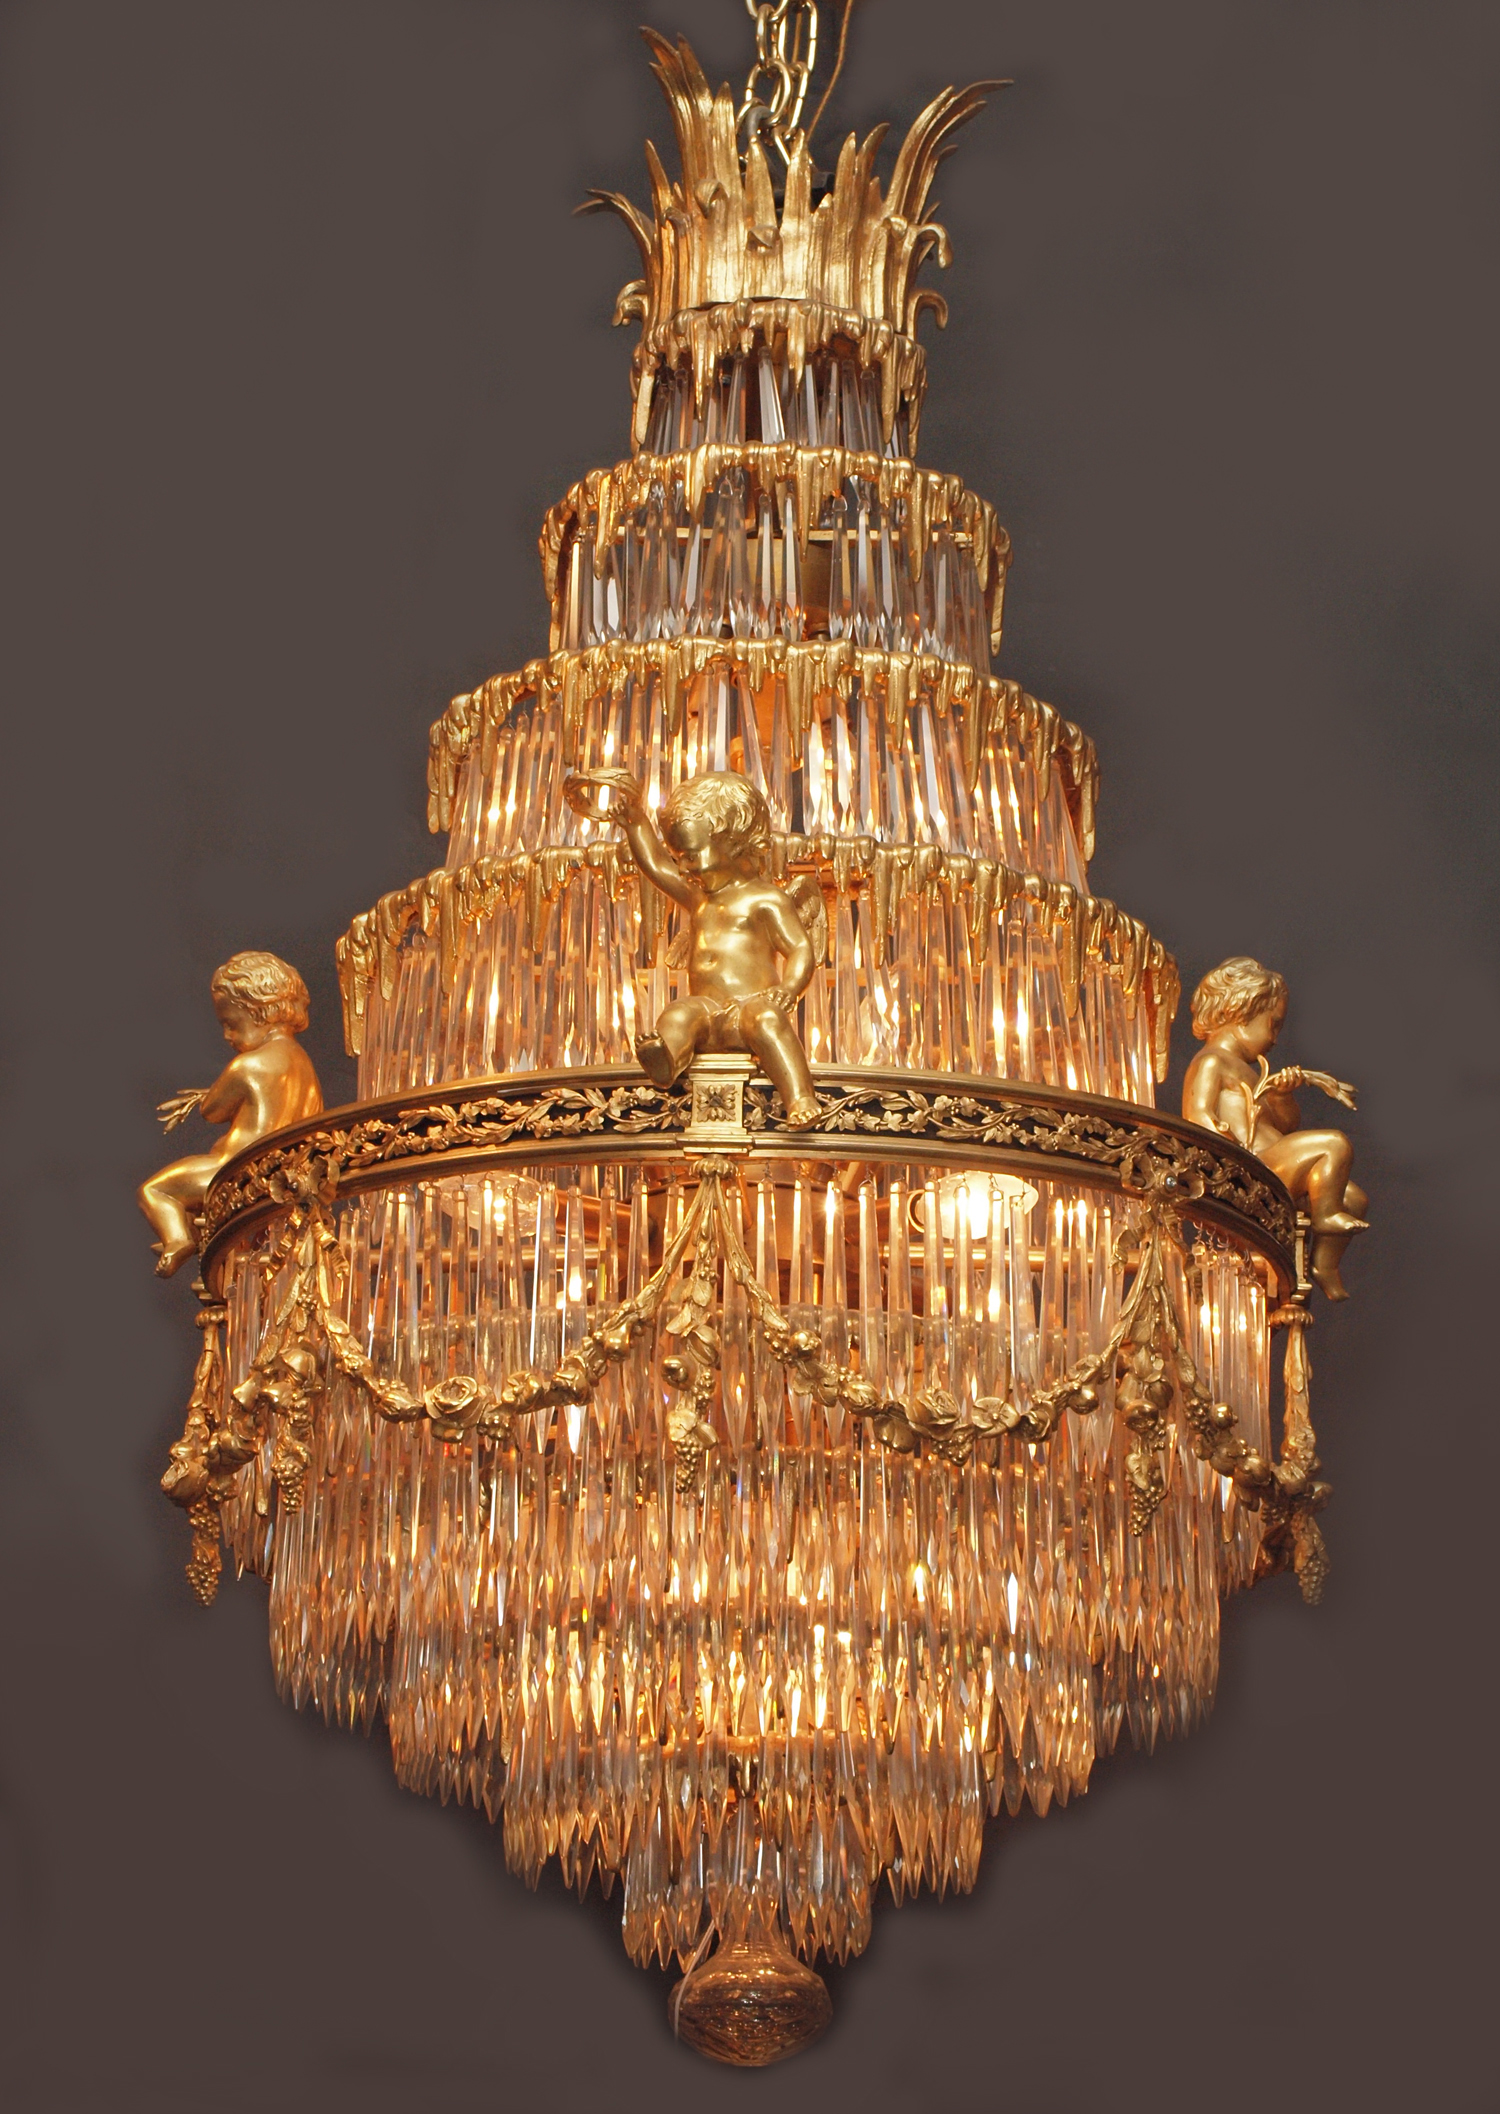 Antique French Belle Epoch Baccarat Crystal and Ormolu Waterfall Chandelier  -CHC110 - For Sale - Antique French Belle Epoch Baccarat Crystal And Ormolu Waterfall